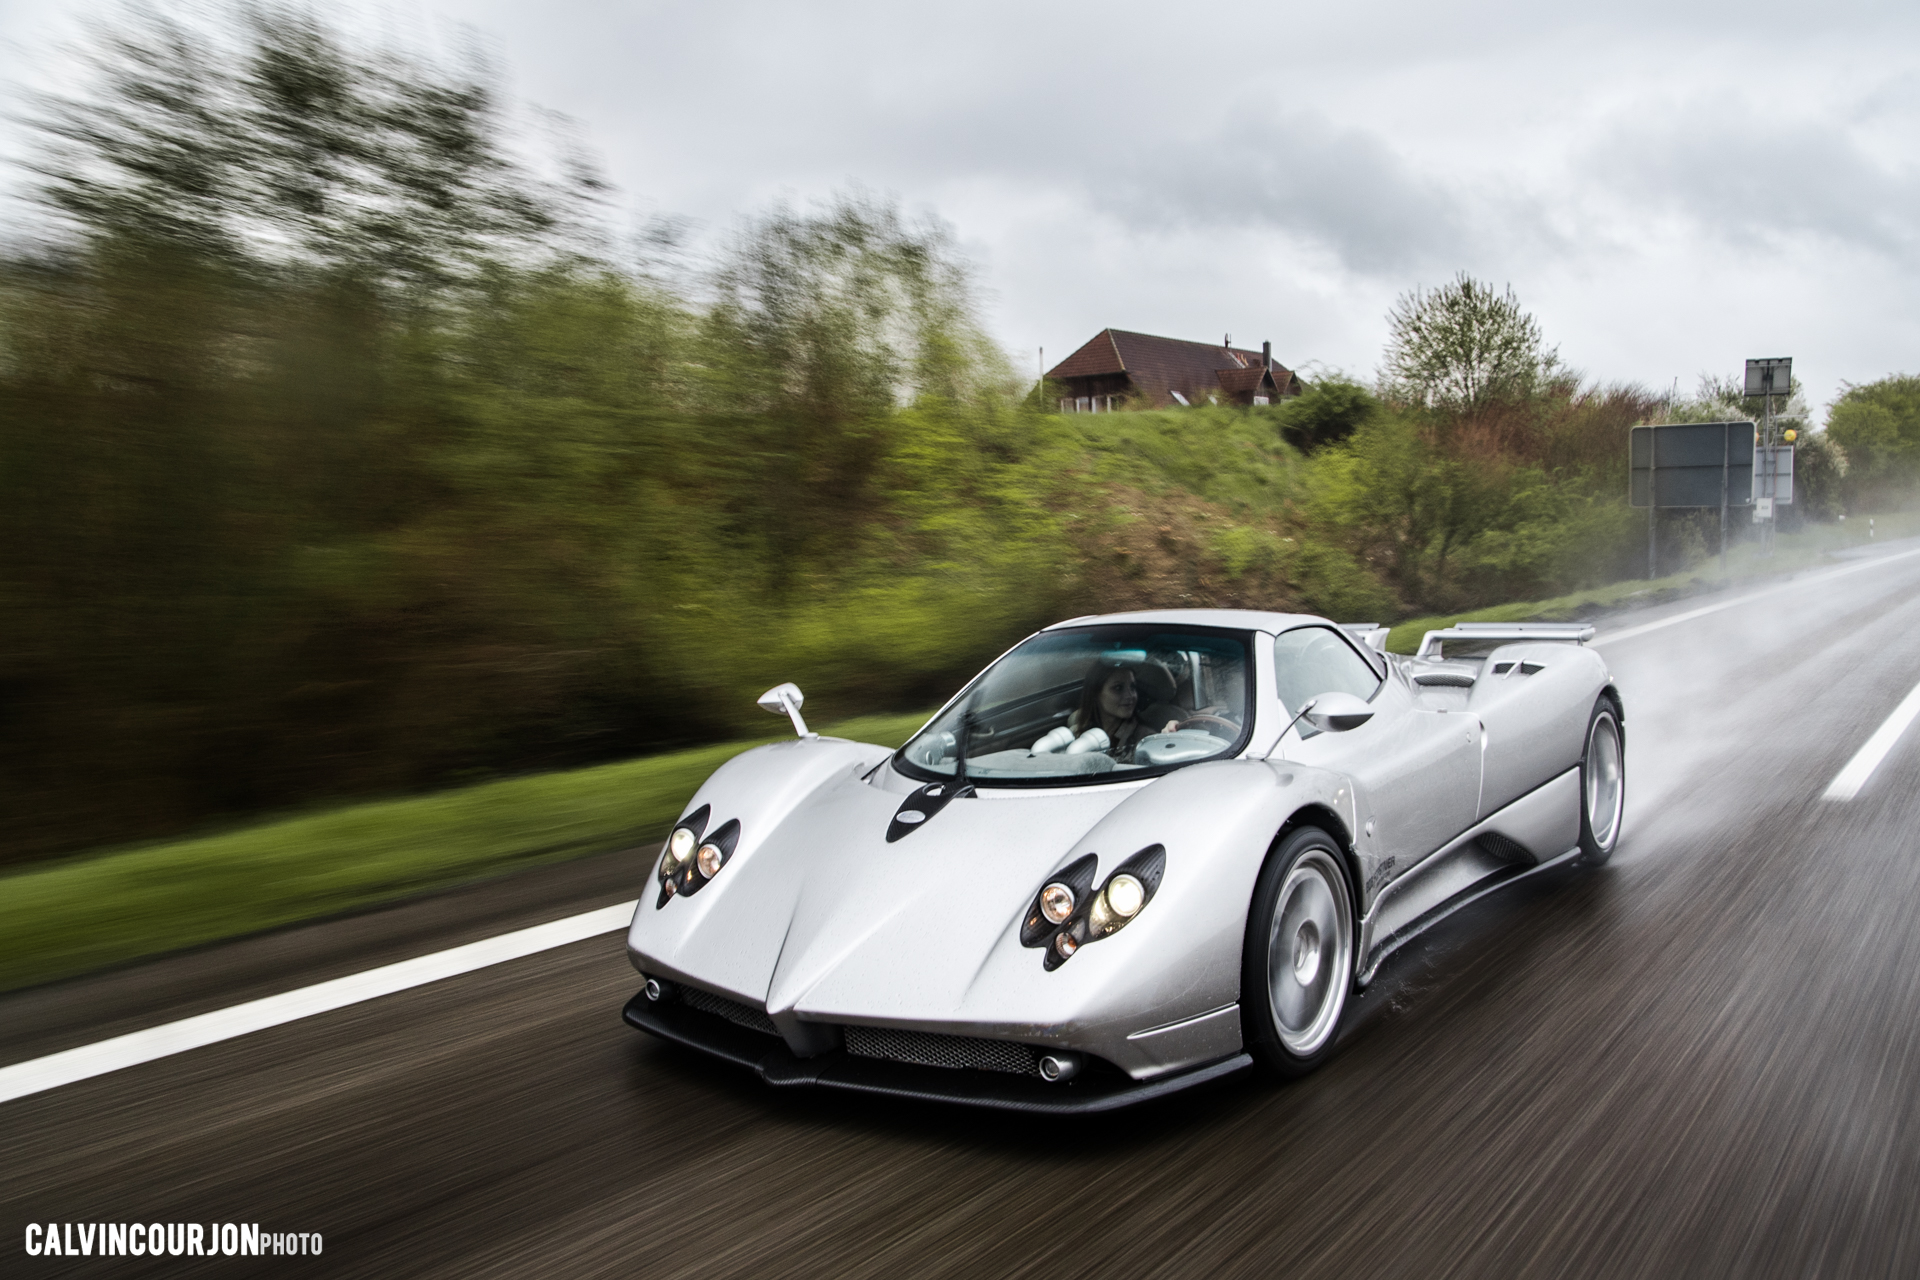 Pagani Zonda F side face - 2016 - Calvin Courjon Photographie